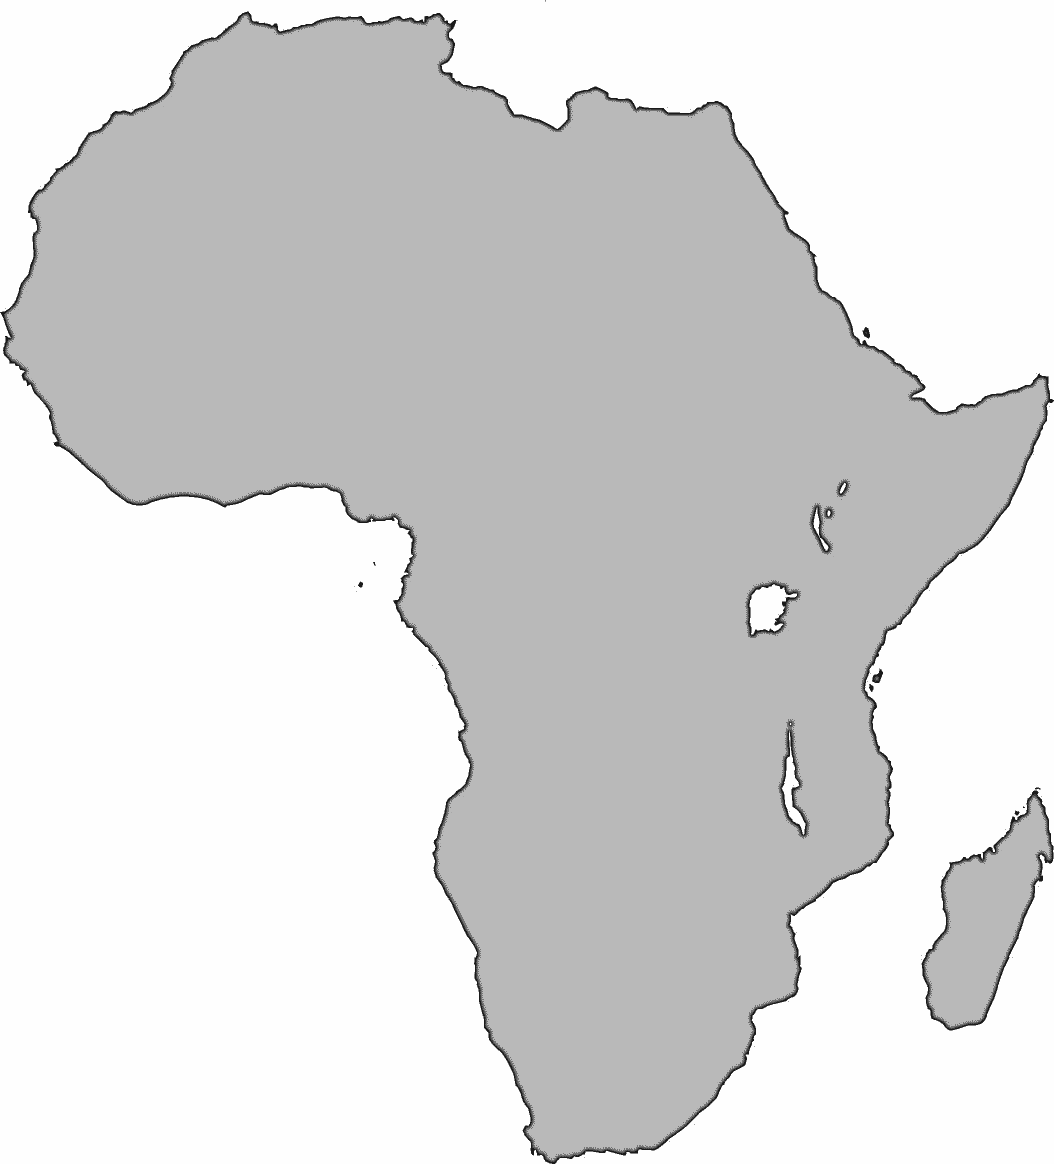 clipart west africa - photo #33